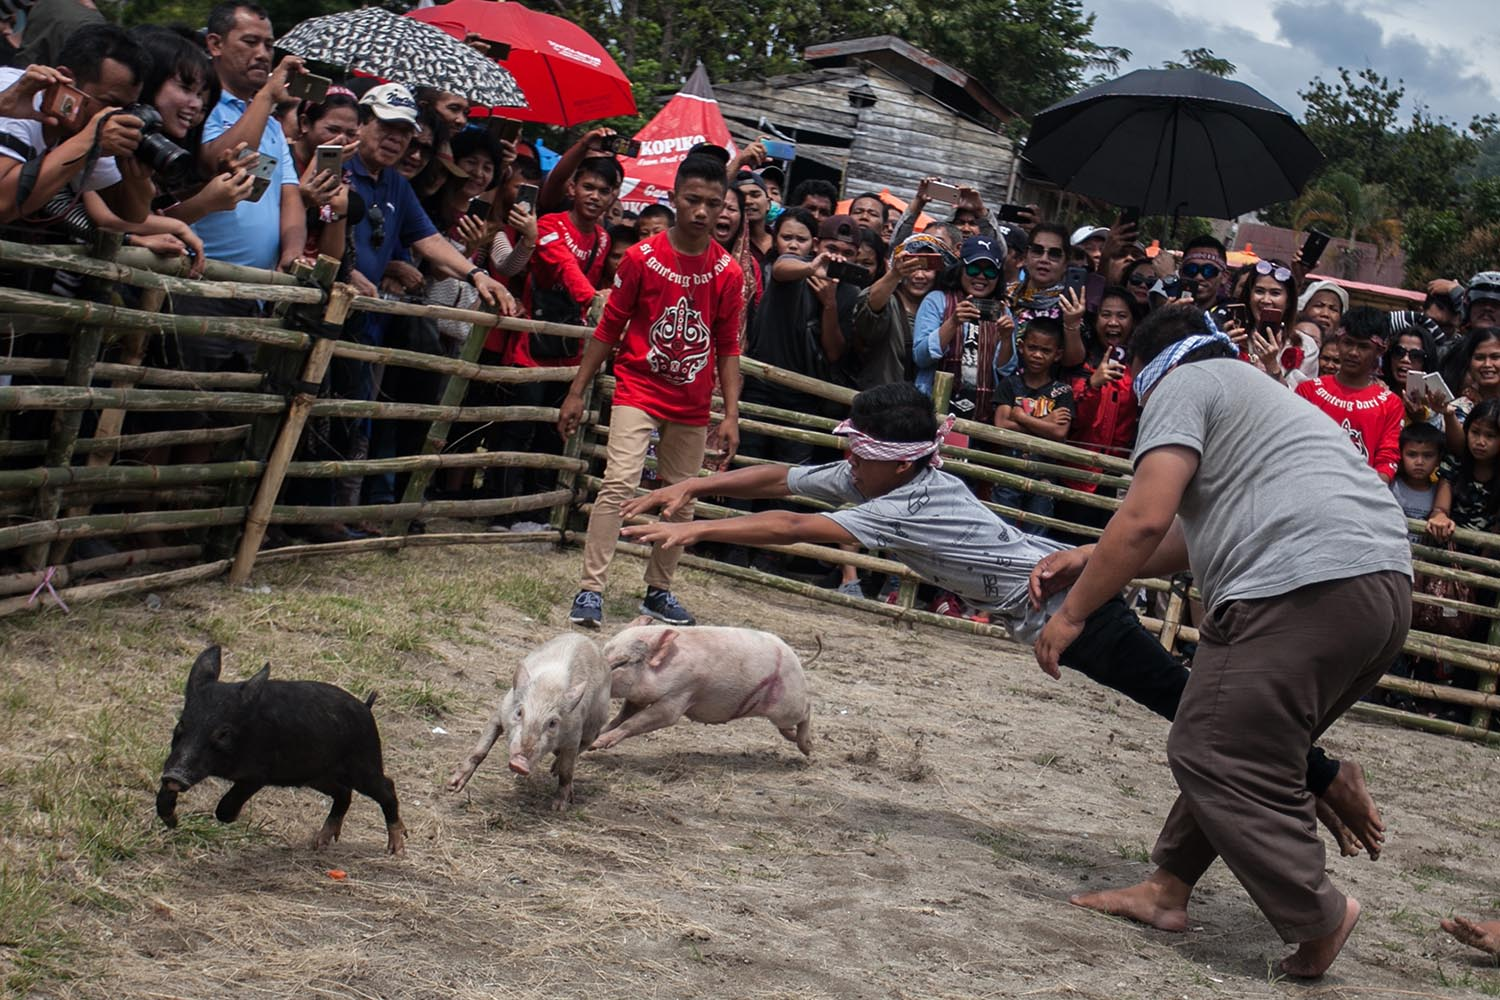 Got 'em!: Blindfolded competitors try to catch pigs. JP/Andri Ginting